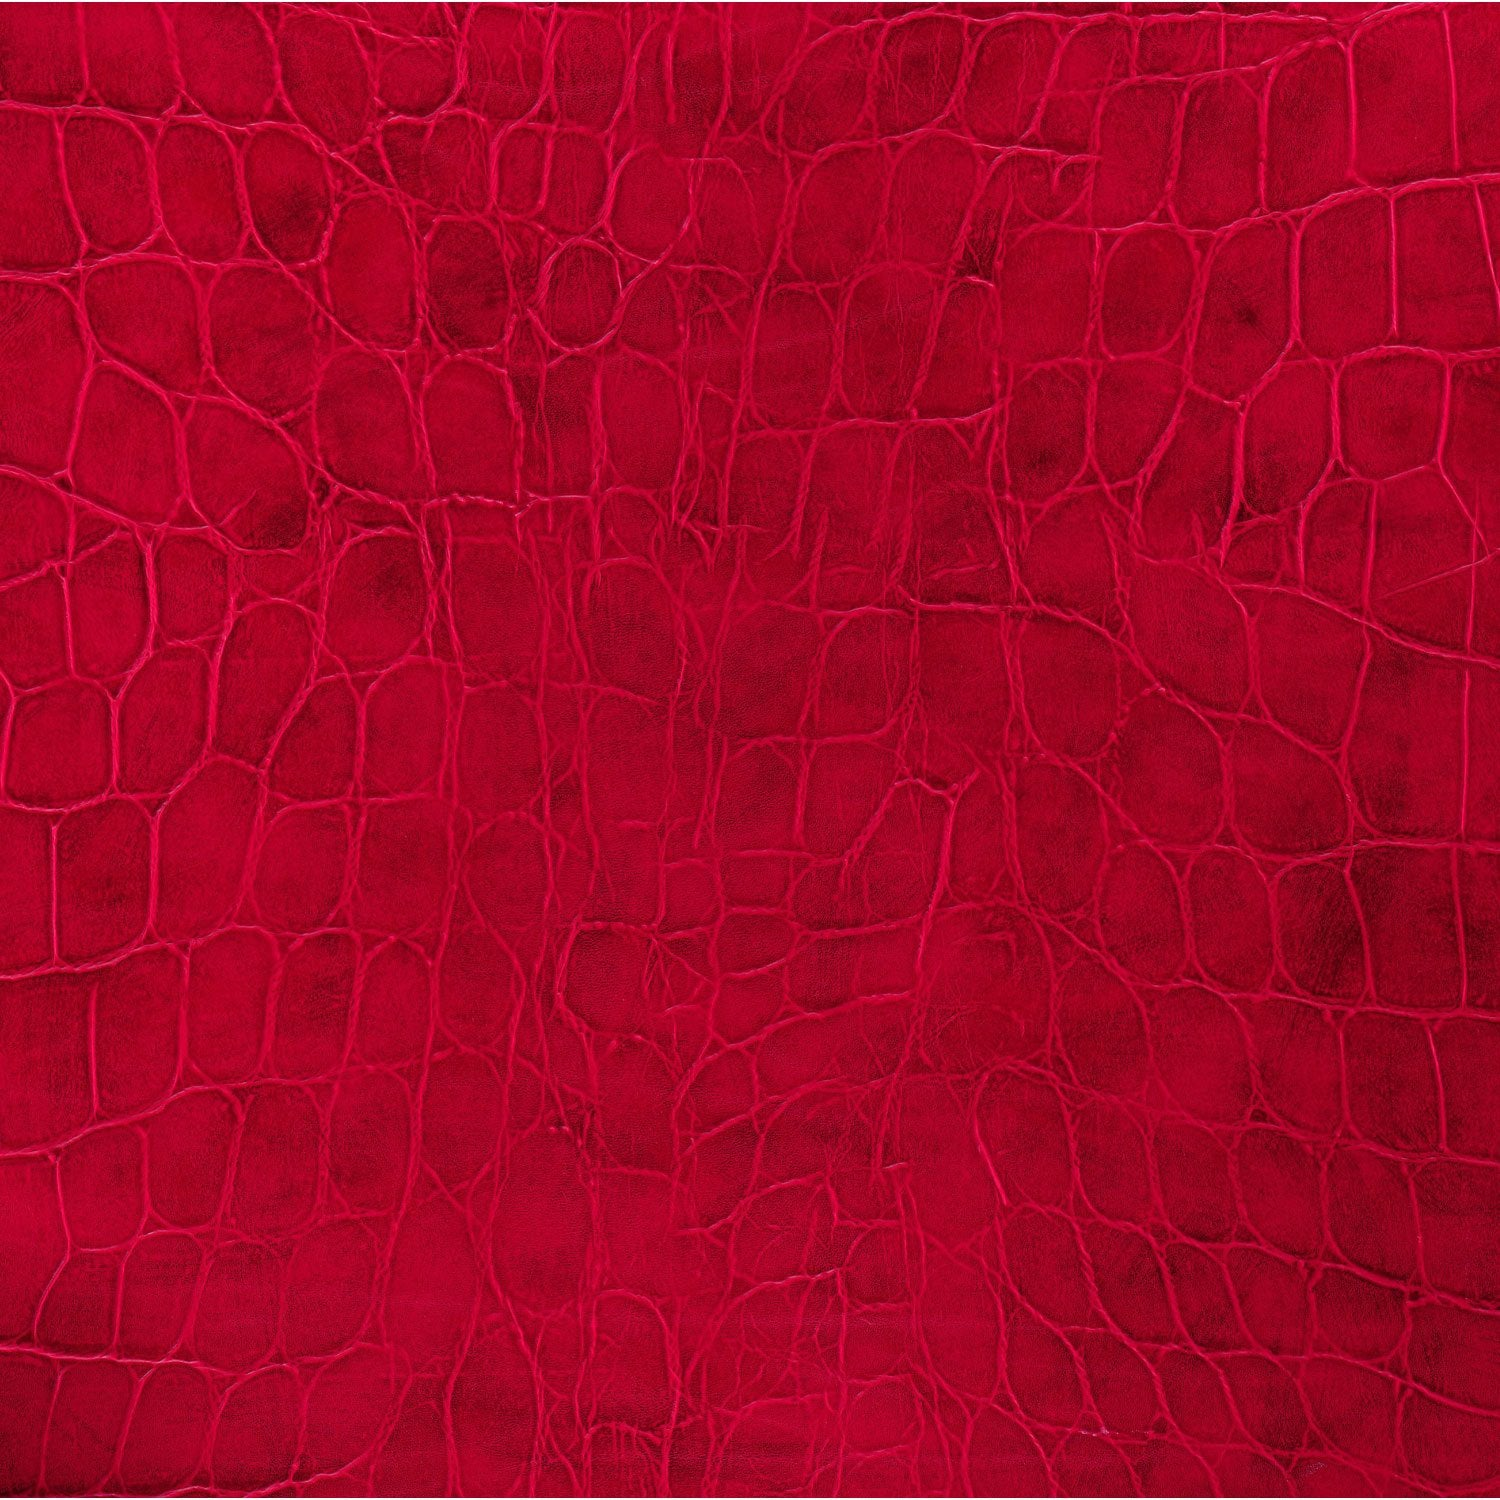 Rev tement adh sif croco rouge 2 m x m leroy merlin for Carrelage adhesif mural leroy merlin